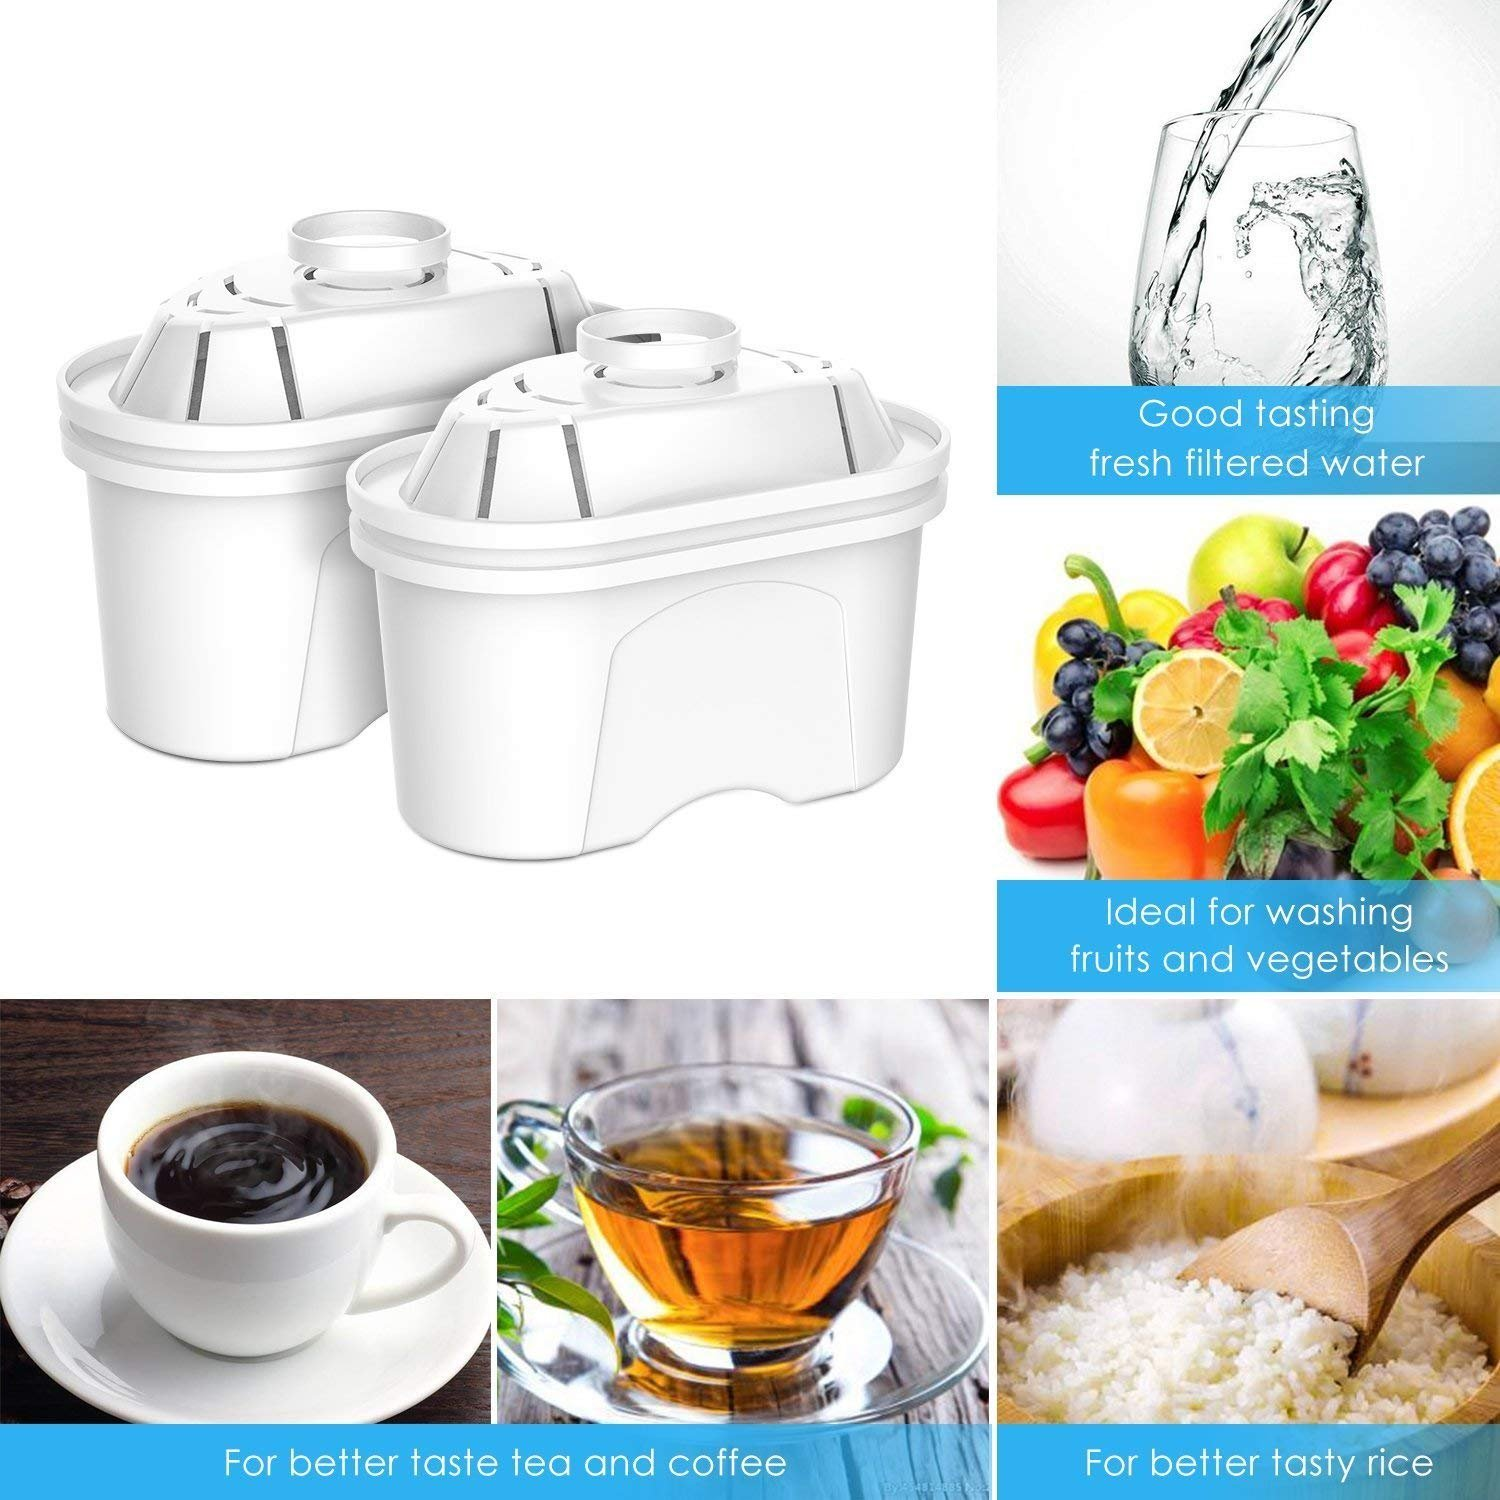 Aozora Replacement Filter Water Pitcher with 4-Stage Filtration for Reducing Lead, Mercury, Zinc, and Removing Chlorine Taste & Odor, Drinking Water Filter for Pitcher by Aozora (Image #2)